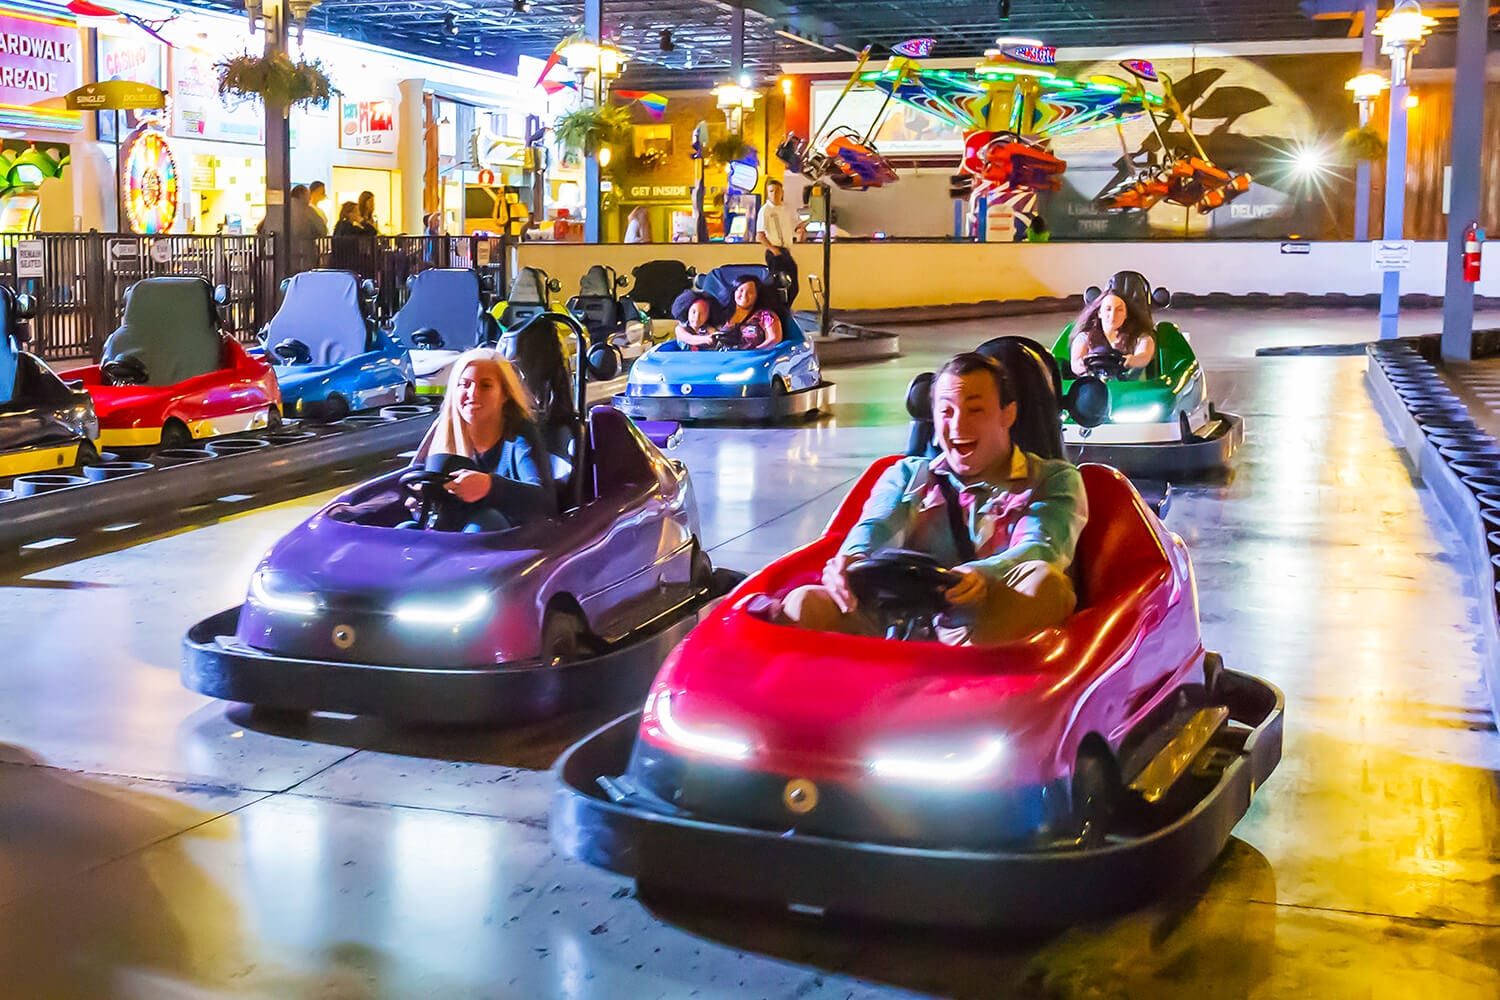 Beep Beep! Make way for your young child as they conquer Freehold's iPlay America!